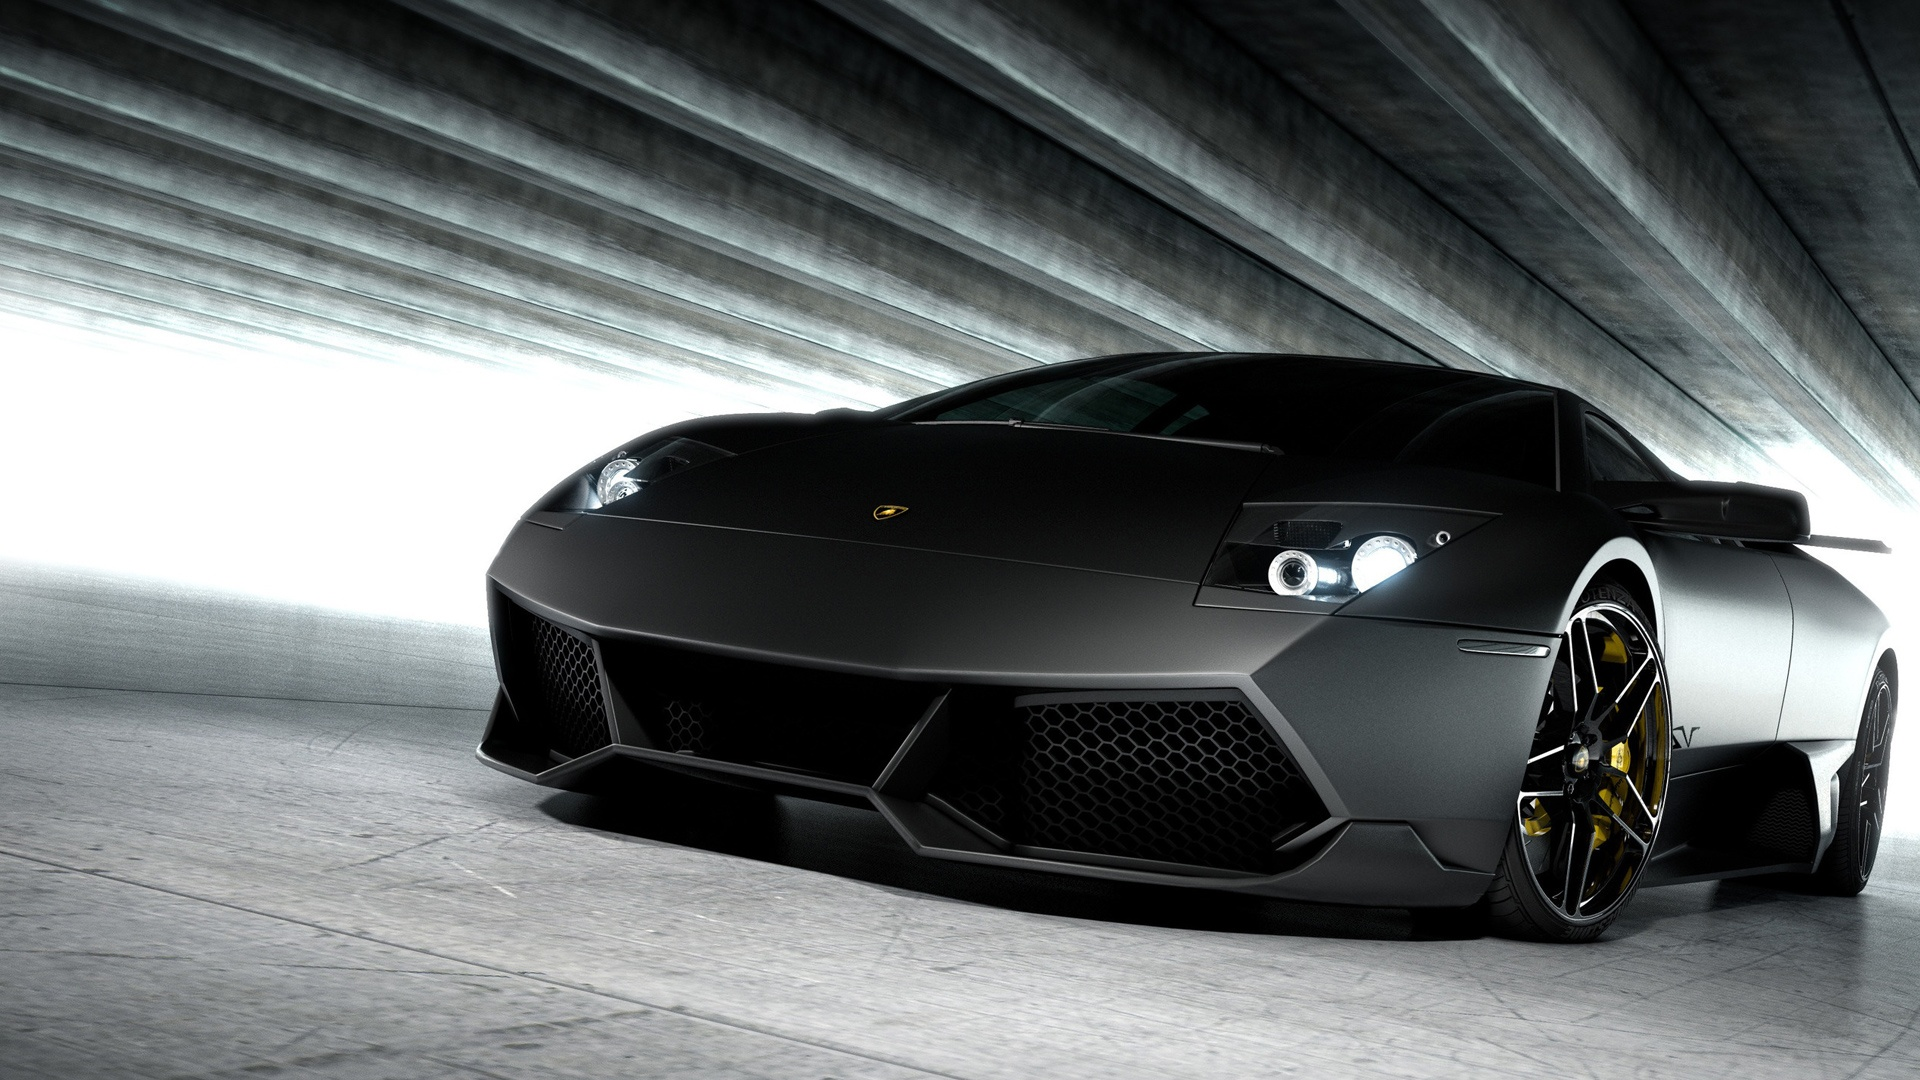 ... Lamborghini wallpaper 4 ...